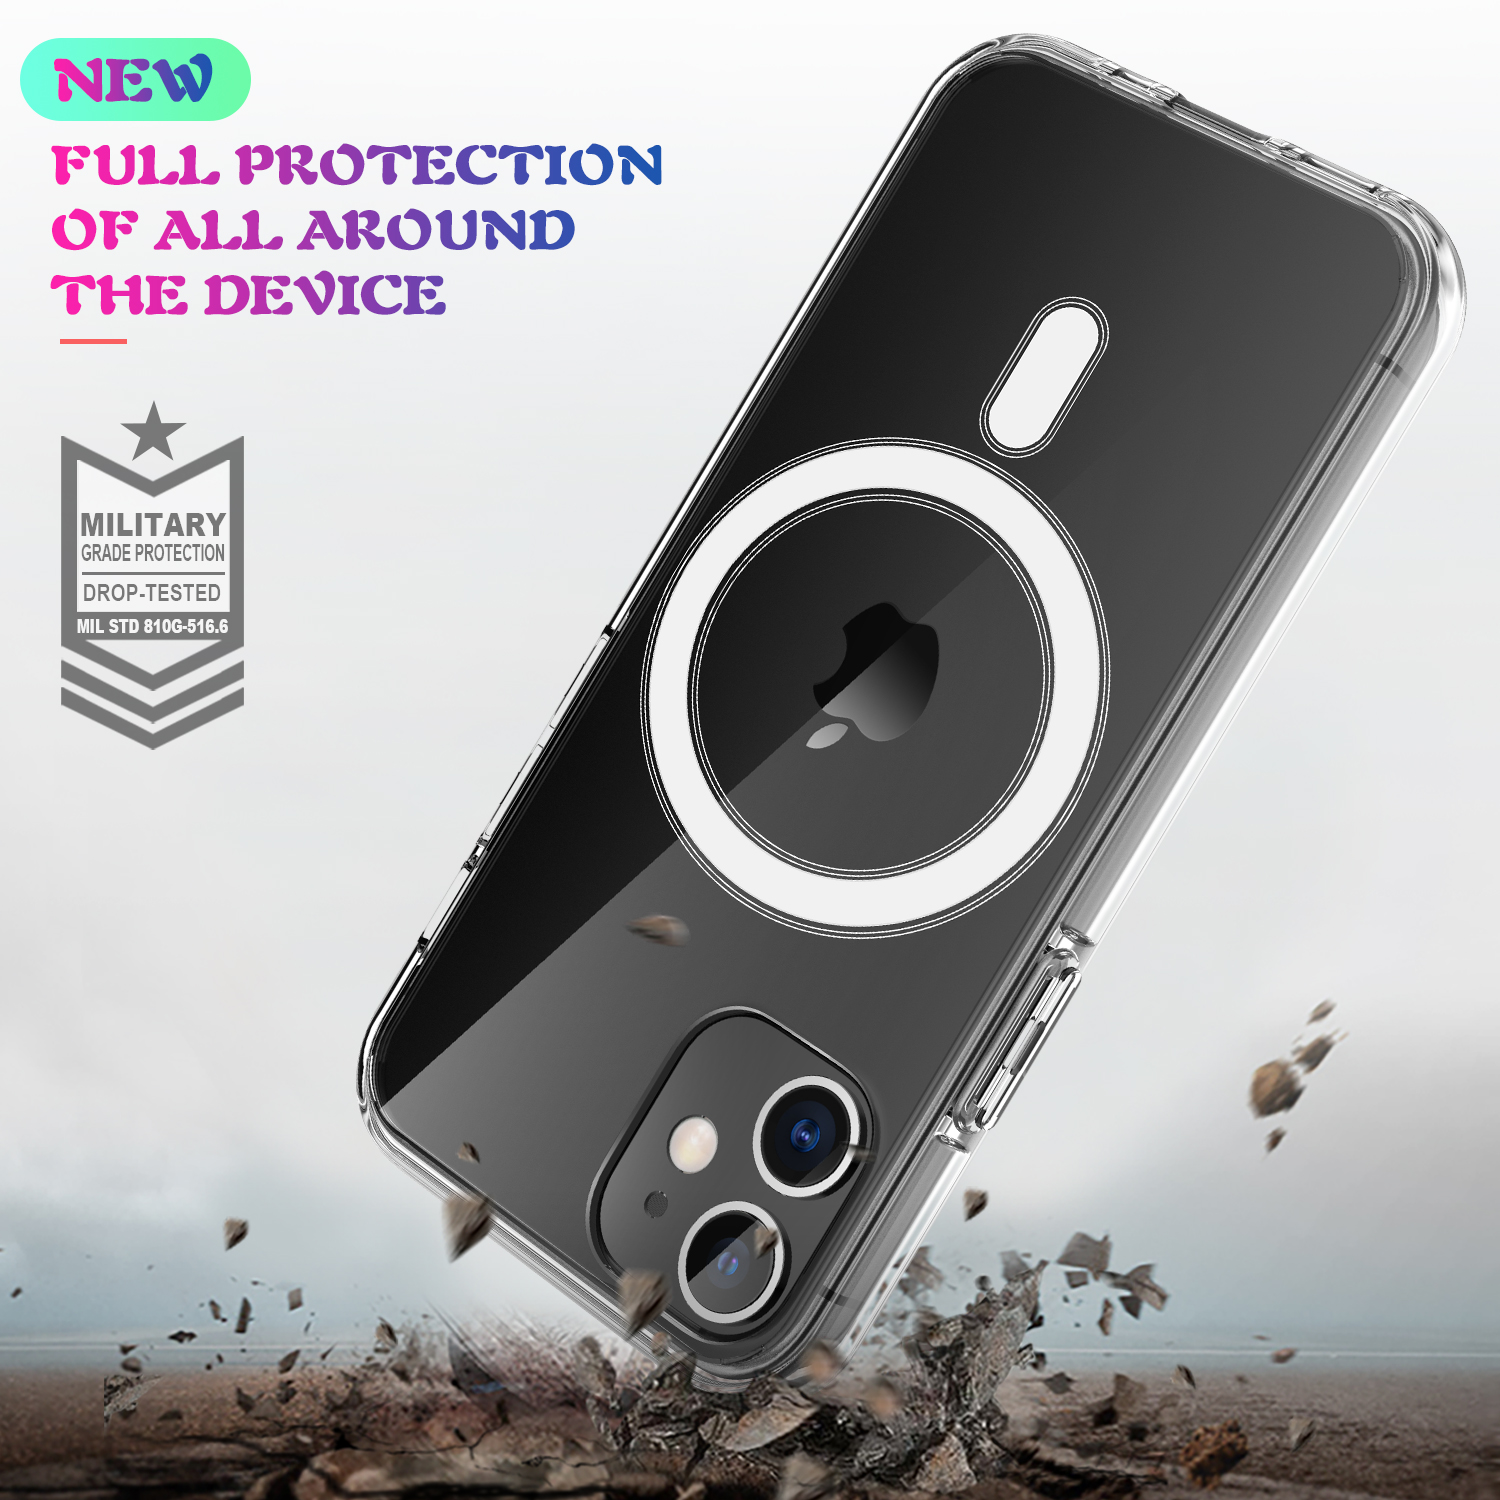 Transparent Clear Acrylic Waterproof Case for iPhone 12 Pro